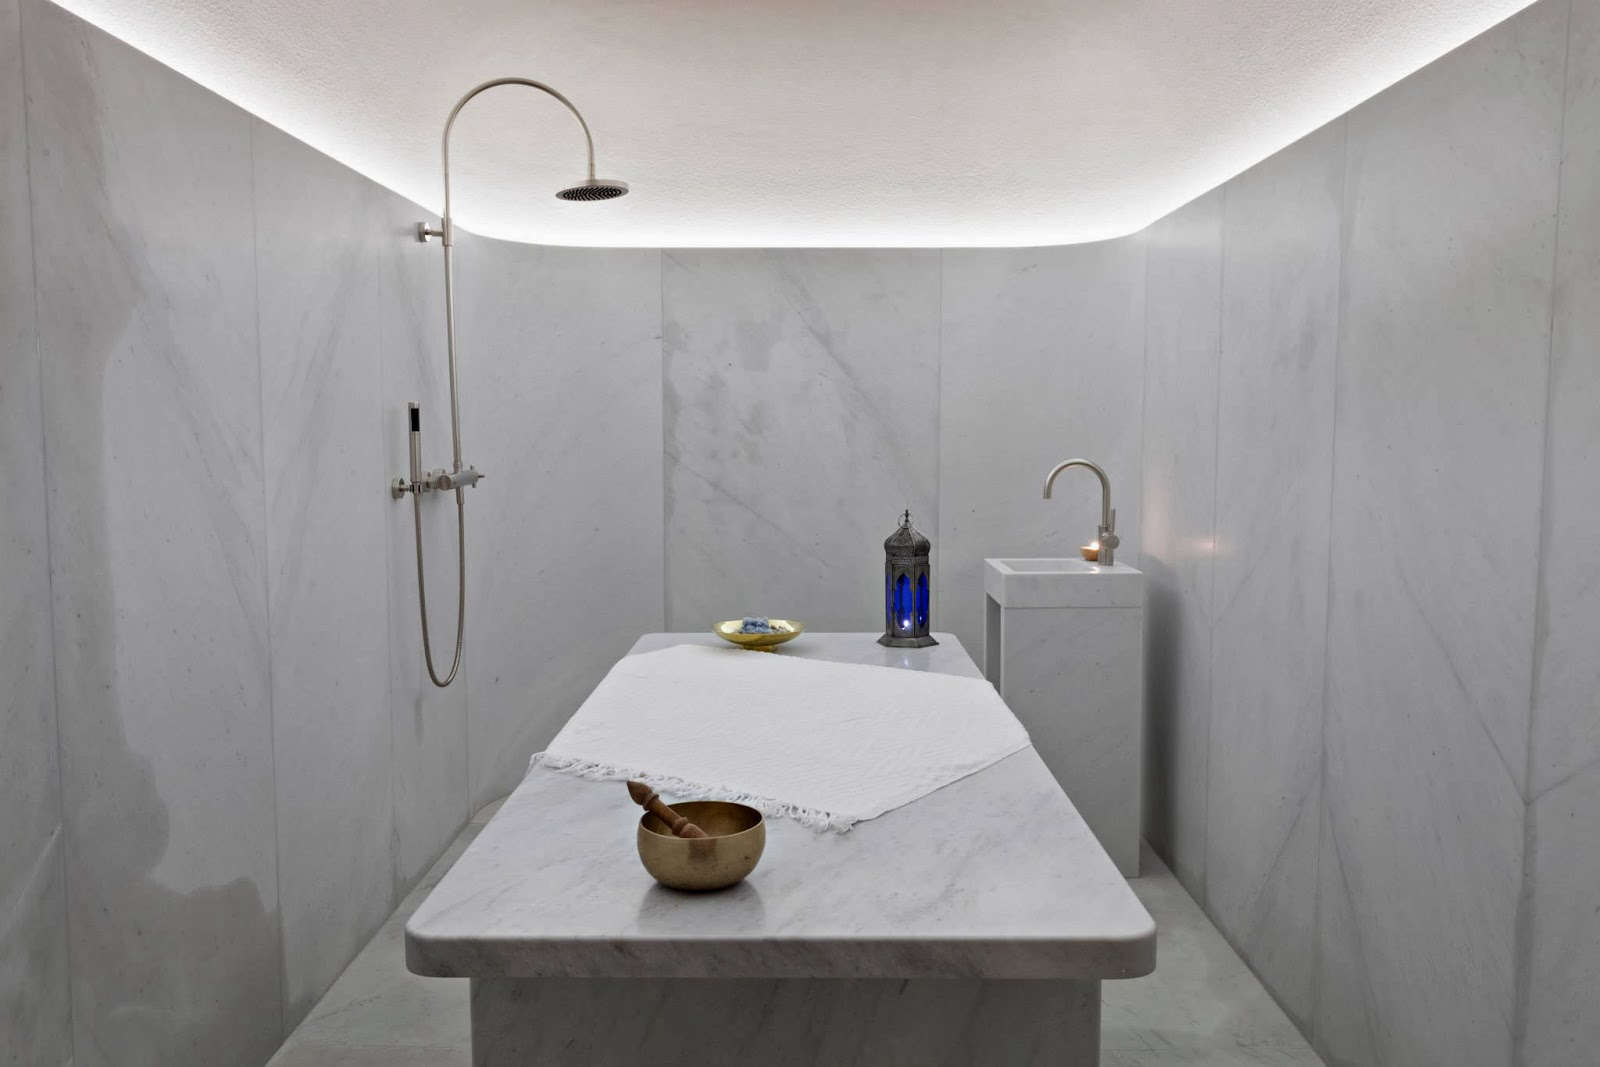 Akasha Holistic Wellbeing Centre by David Chipperfield Architects